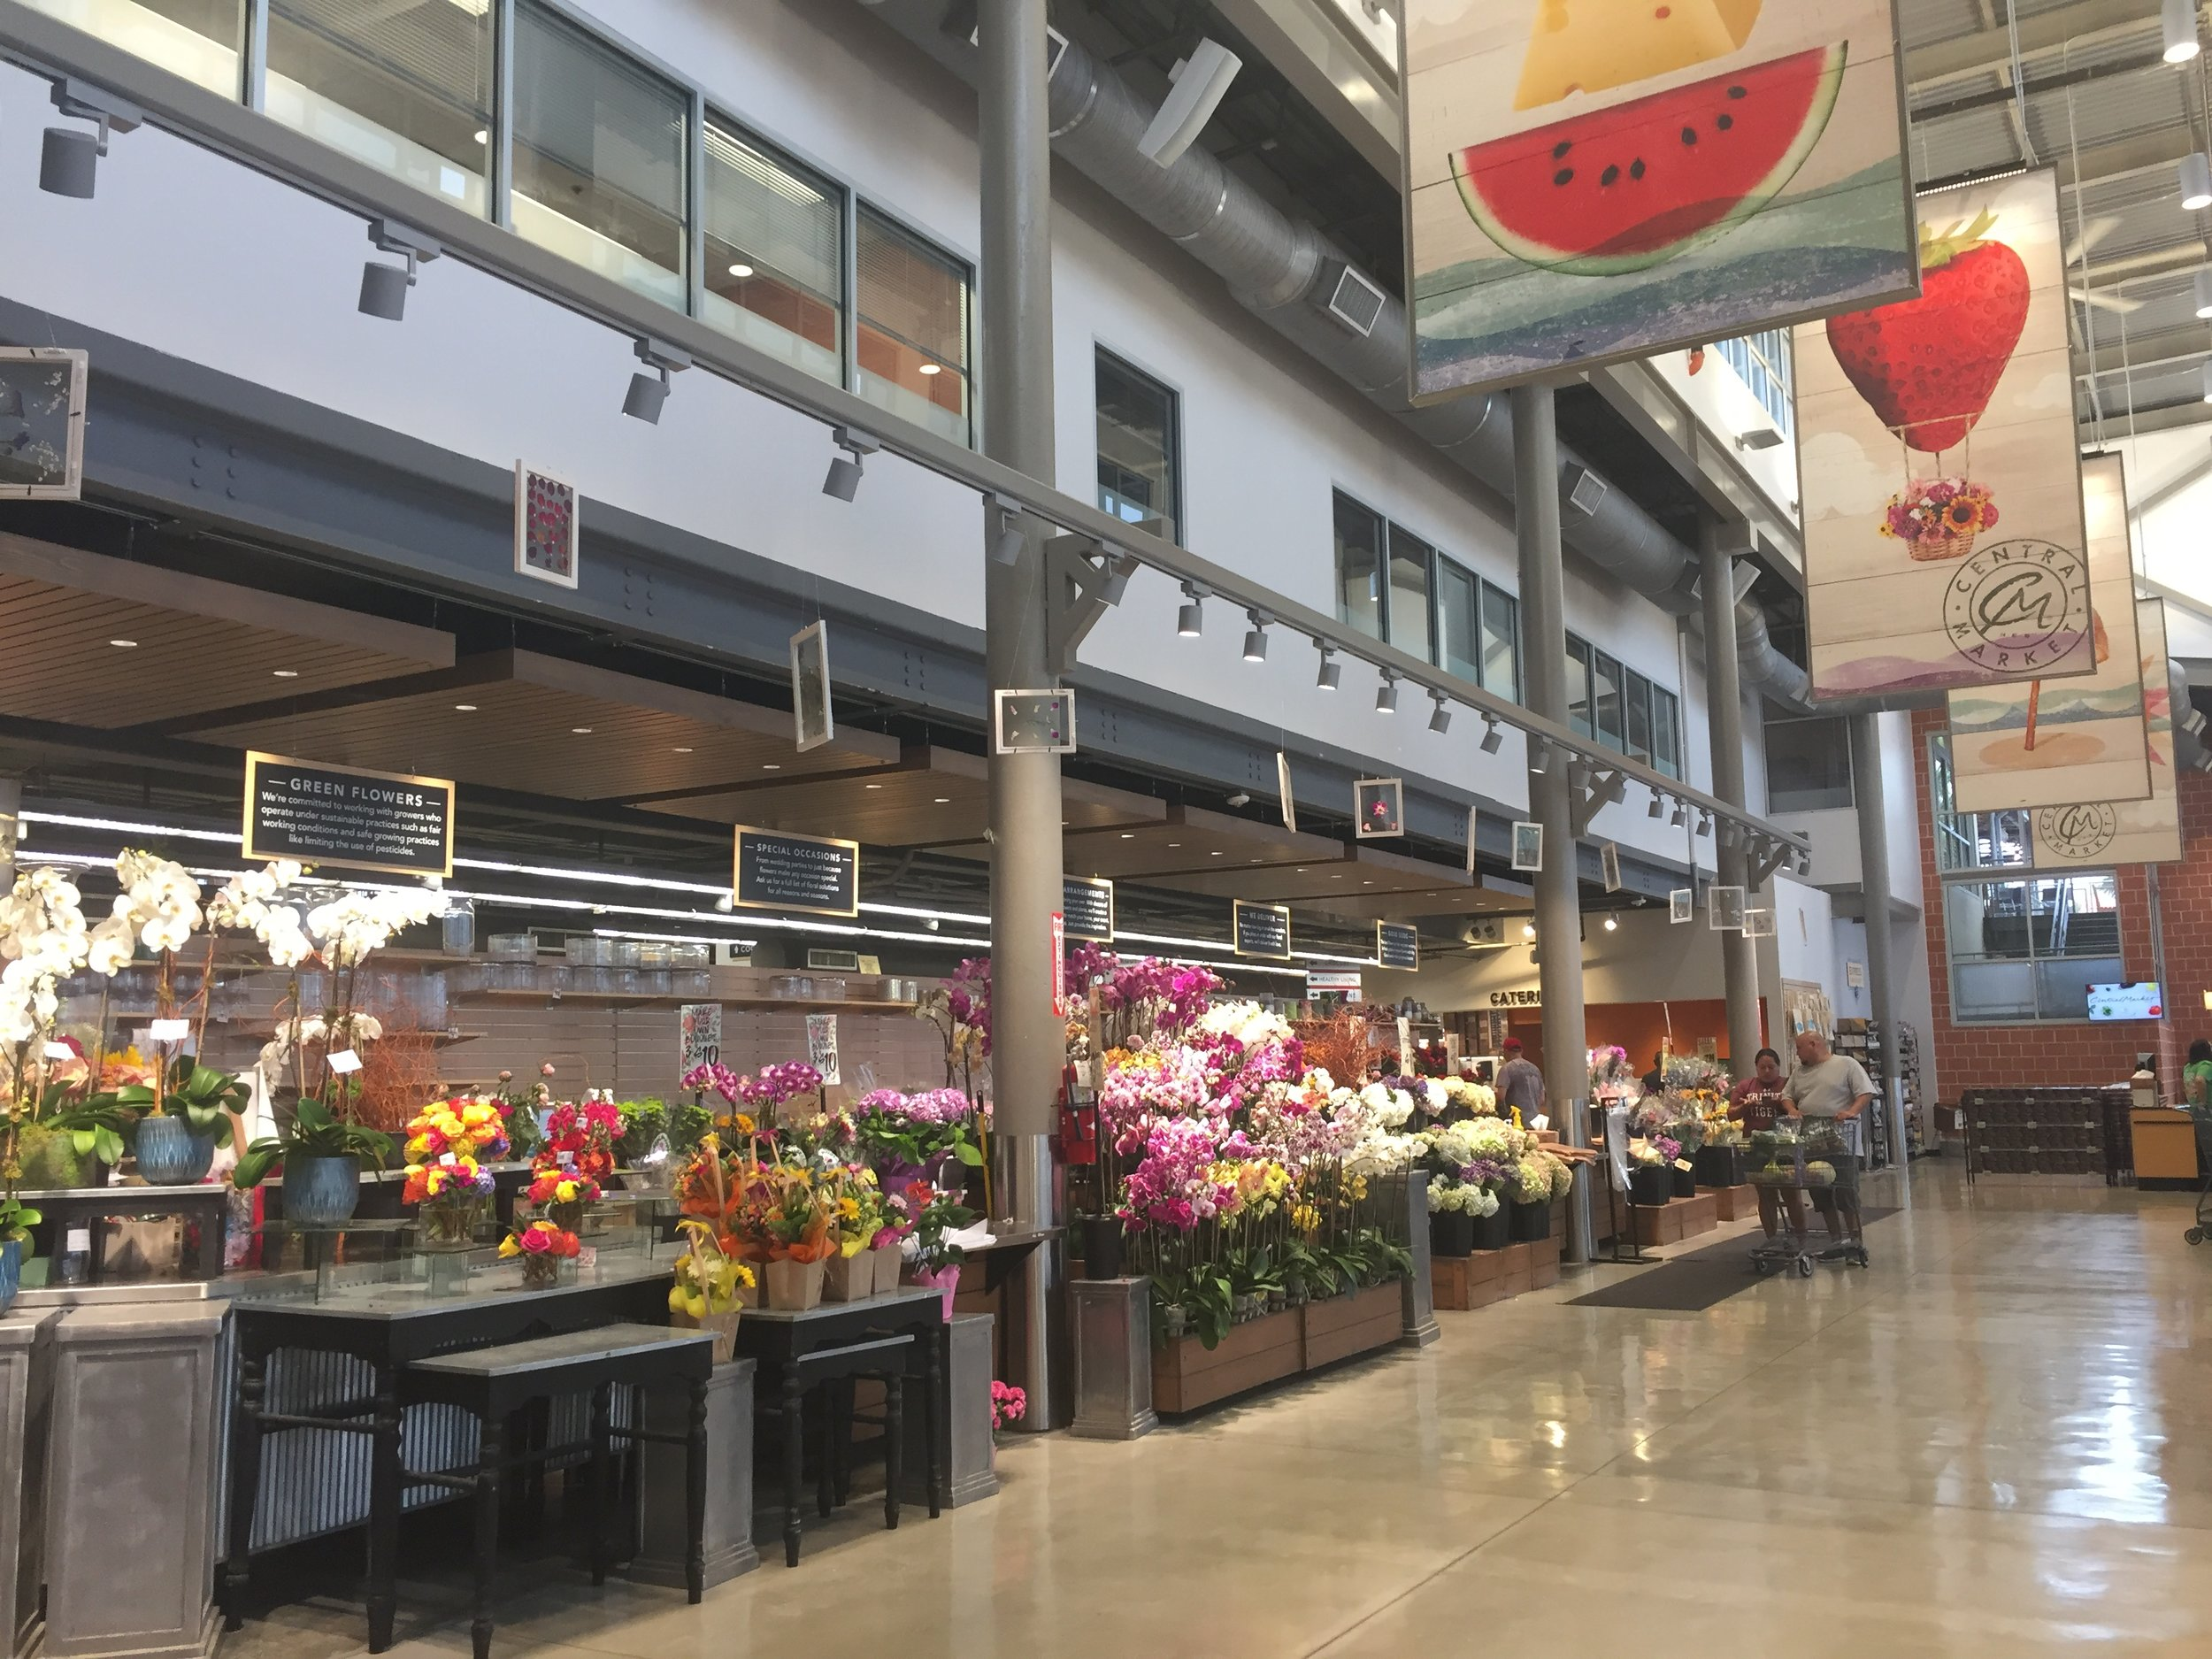 Central Market in Houston, Texas